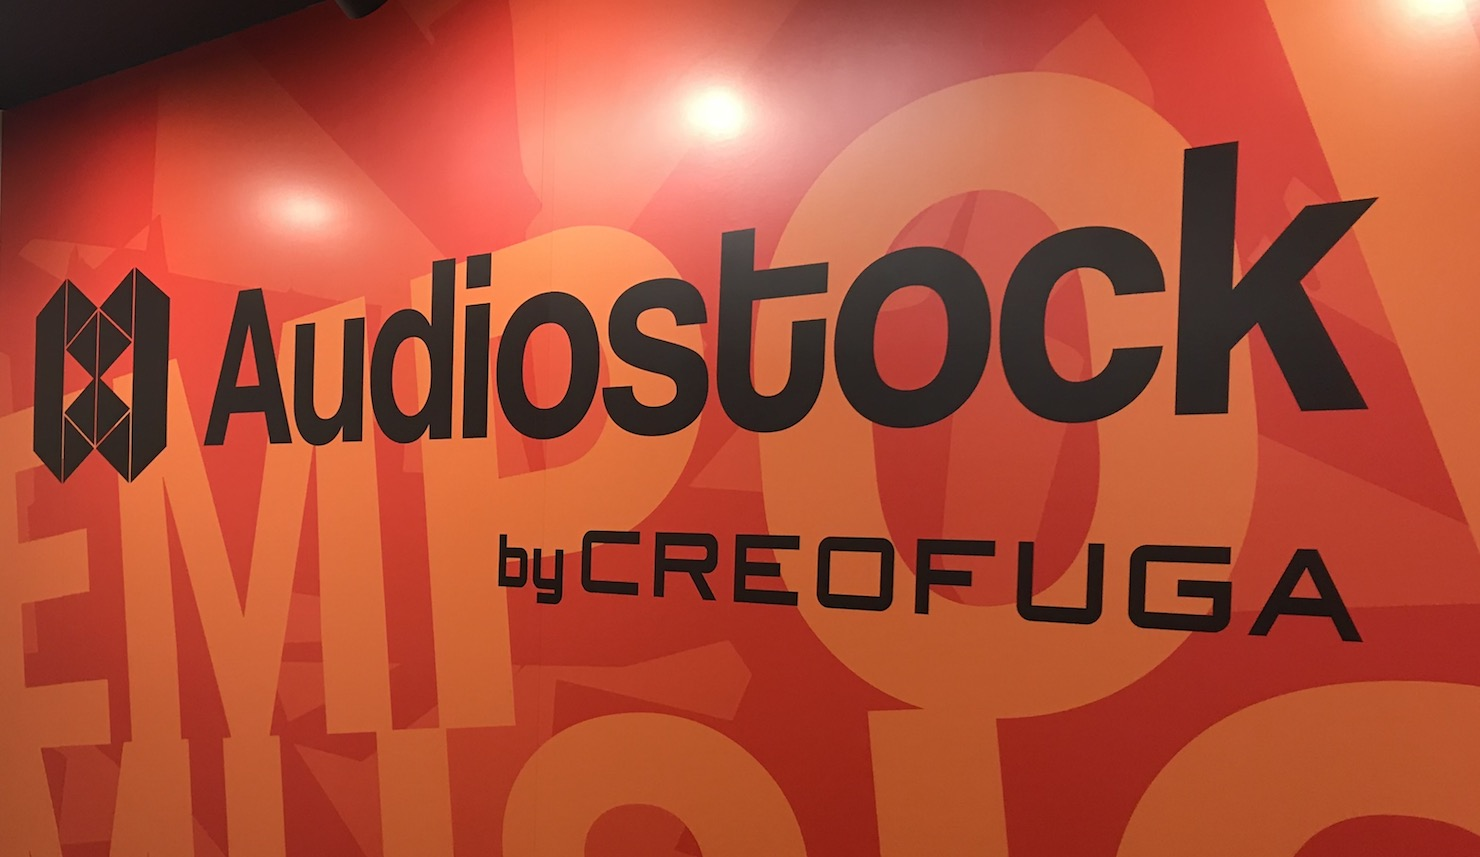 audiostockstudio